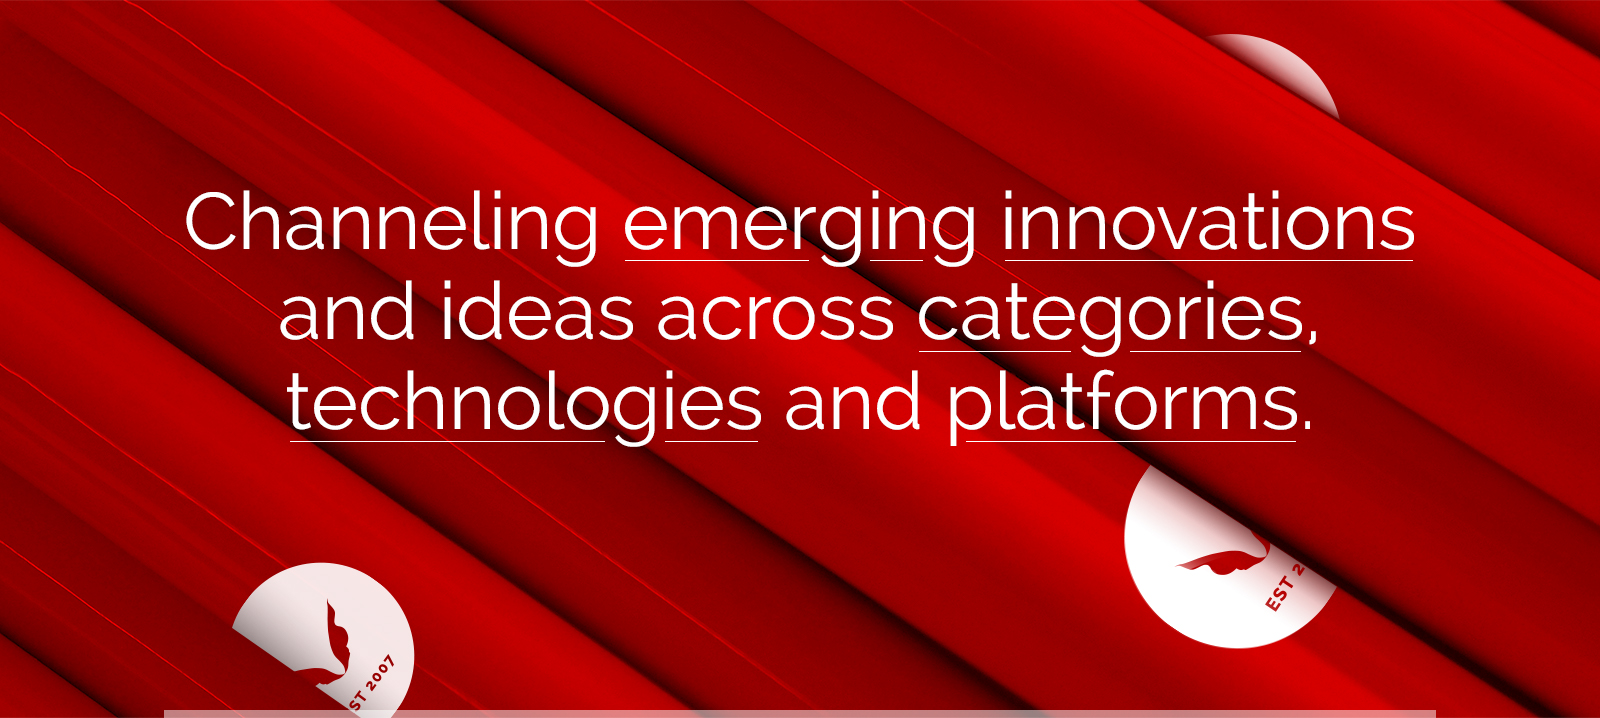 Channeling emerging innovations and ideas across categories, technologies and platforms.